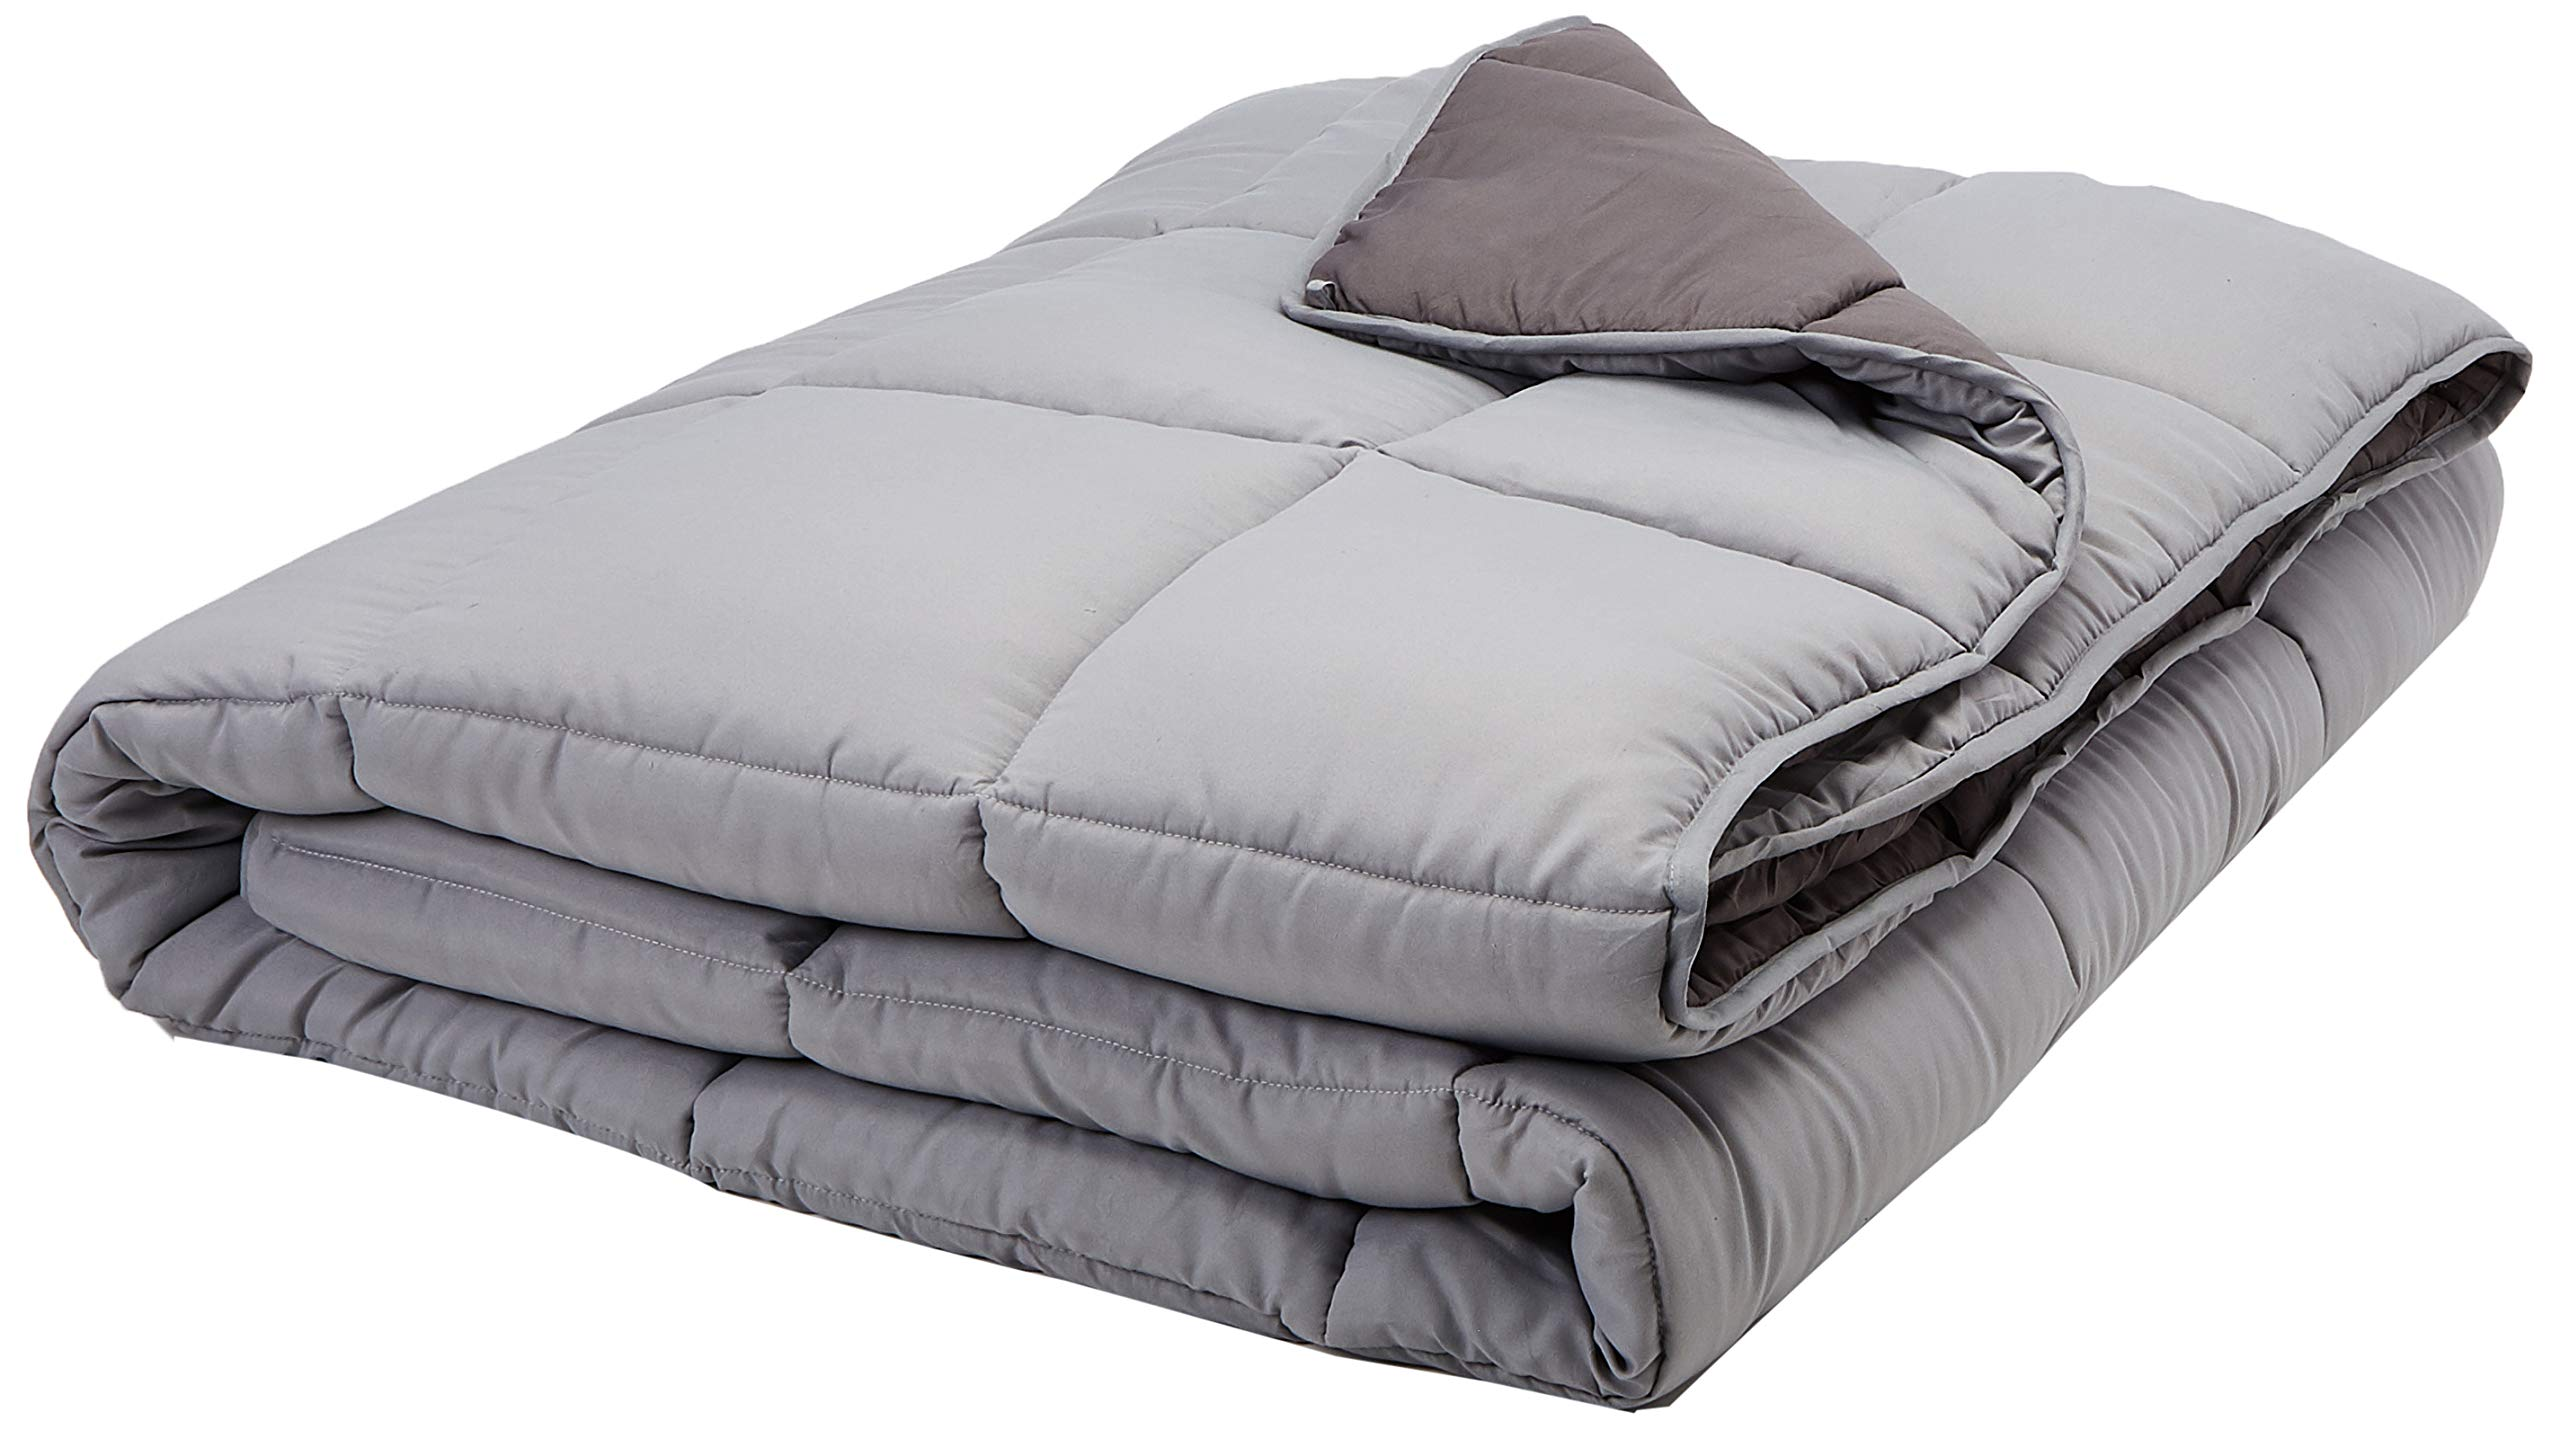 Linenspa All-Season Reversible Down Alternative Quilted Comforter - Hypoallergenic - Plush Microfiber Fill - Machine Washable - Duvet Insert or Stand-Alone Comforter - Stone/Charcoal - Oversized King by Linenspa